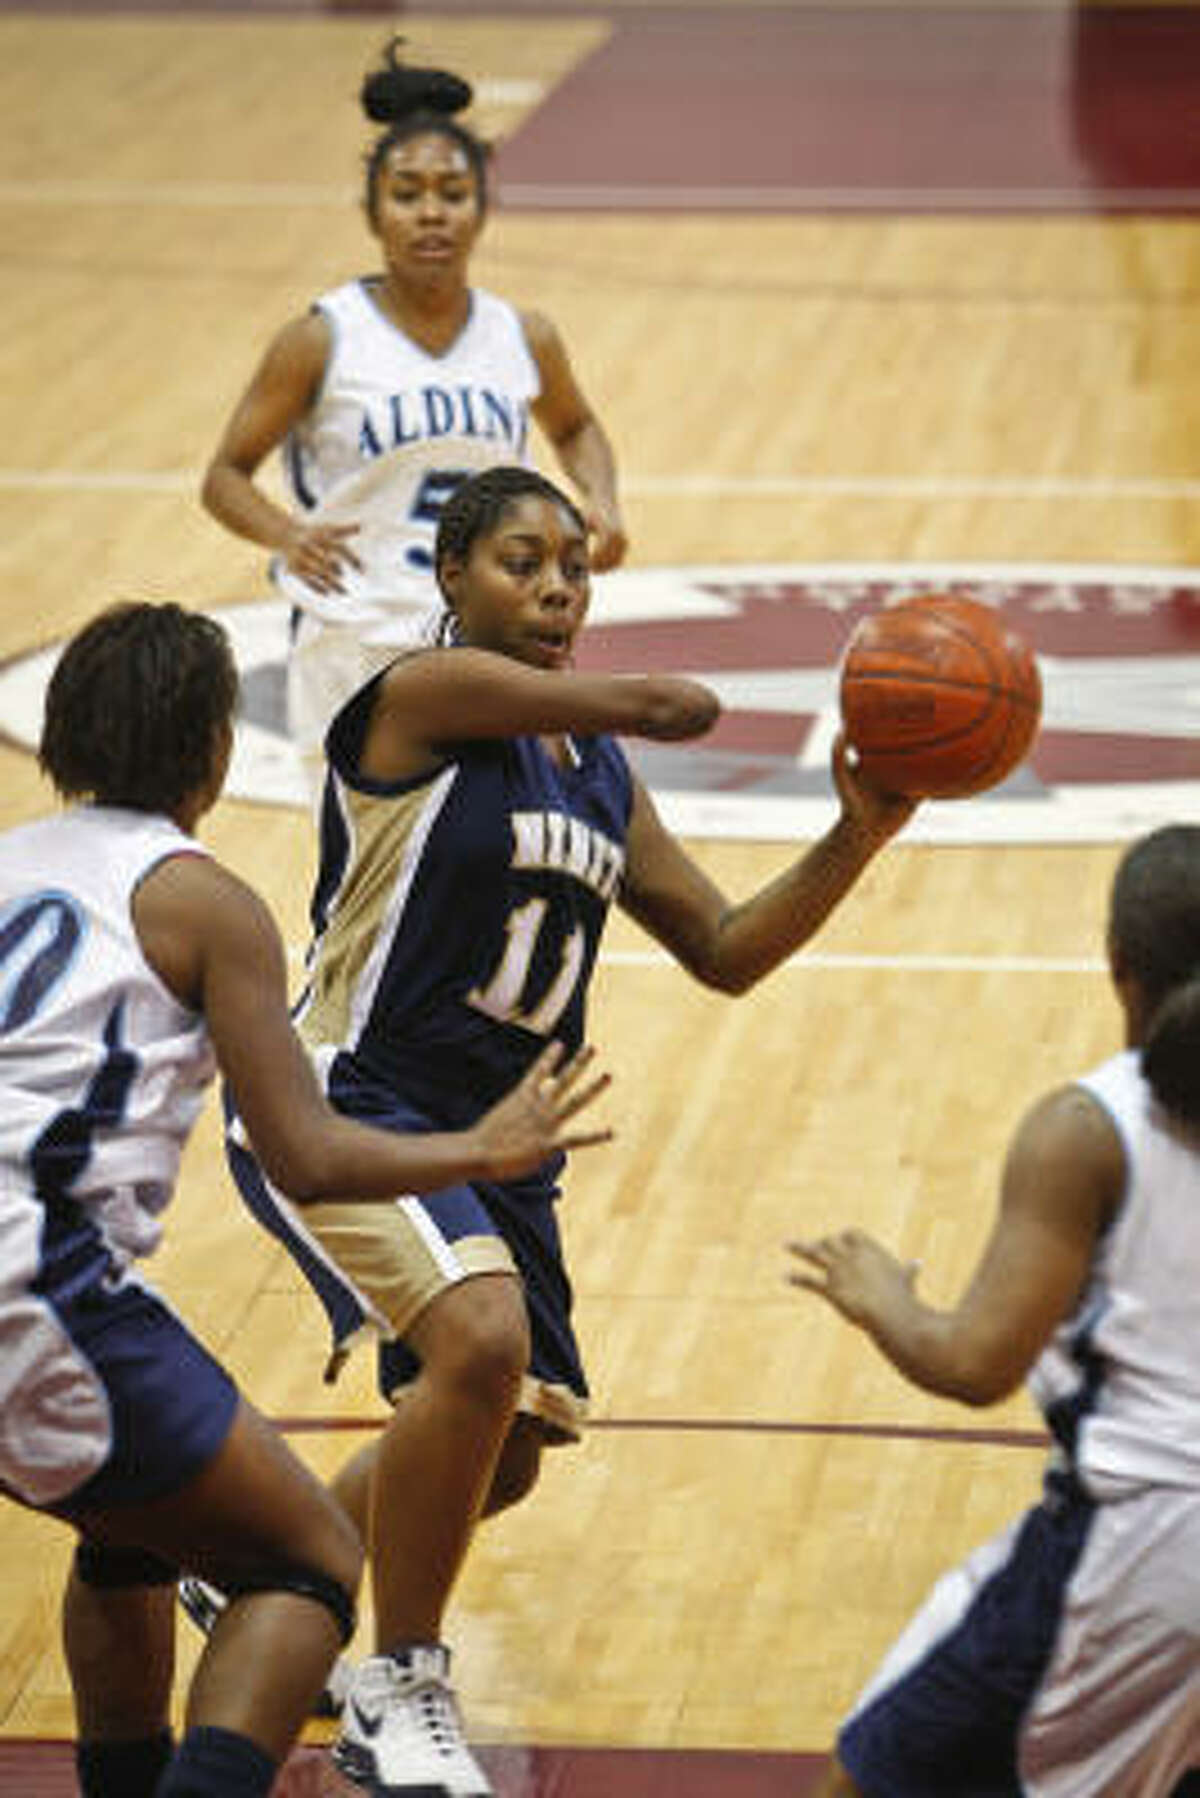 Senior guard Jesse Landry (11) averages approximately seven points and three assists per game off the bench for Nimitz, and she has 13 steals this season.